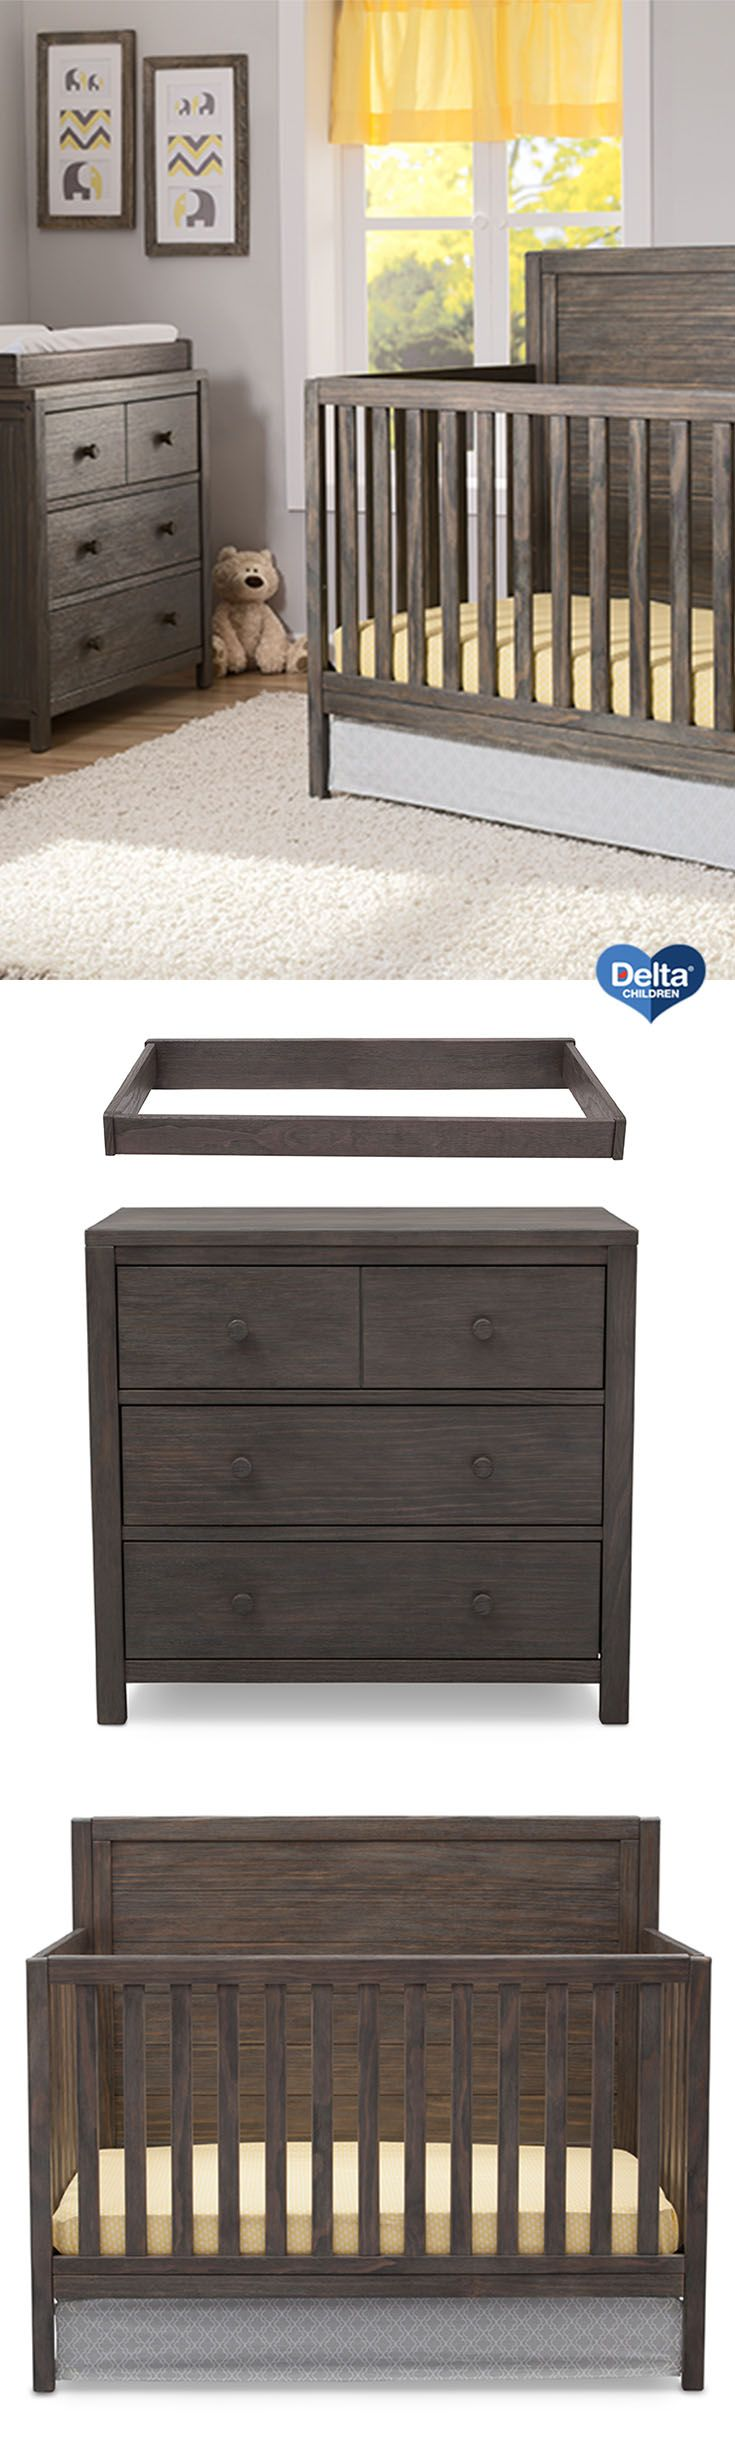 Make your baby feel at home with the Cambridge Collection from Delta Children! Featuring  unique wire brush finish in Rustic Grey and clean, modern lines, this sturdy crib, dresser, and changing top work in a boy's or girl's nursery. The Cambridge 4-in-1 Crib is JPMA certified, is adjustable to three mattress height positions and converts into a toddler bed, daybed, and full size bed. The coordinating Cambridge 3 Drawer Dresser adds storage space and style! #nursery #rustic #wood…